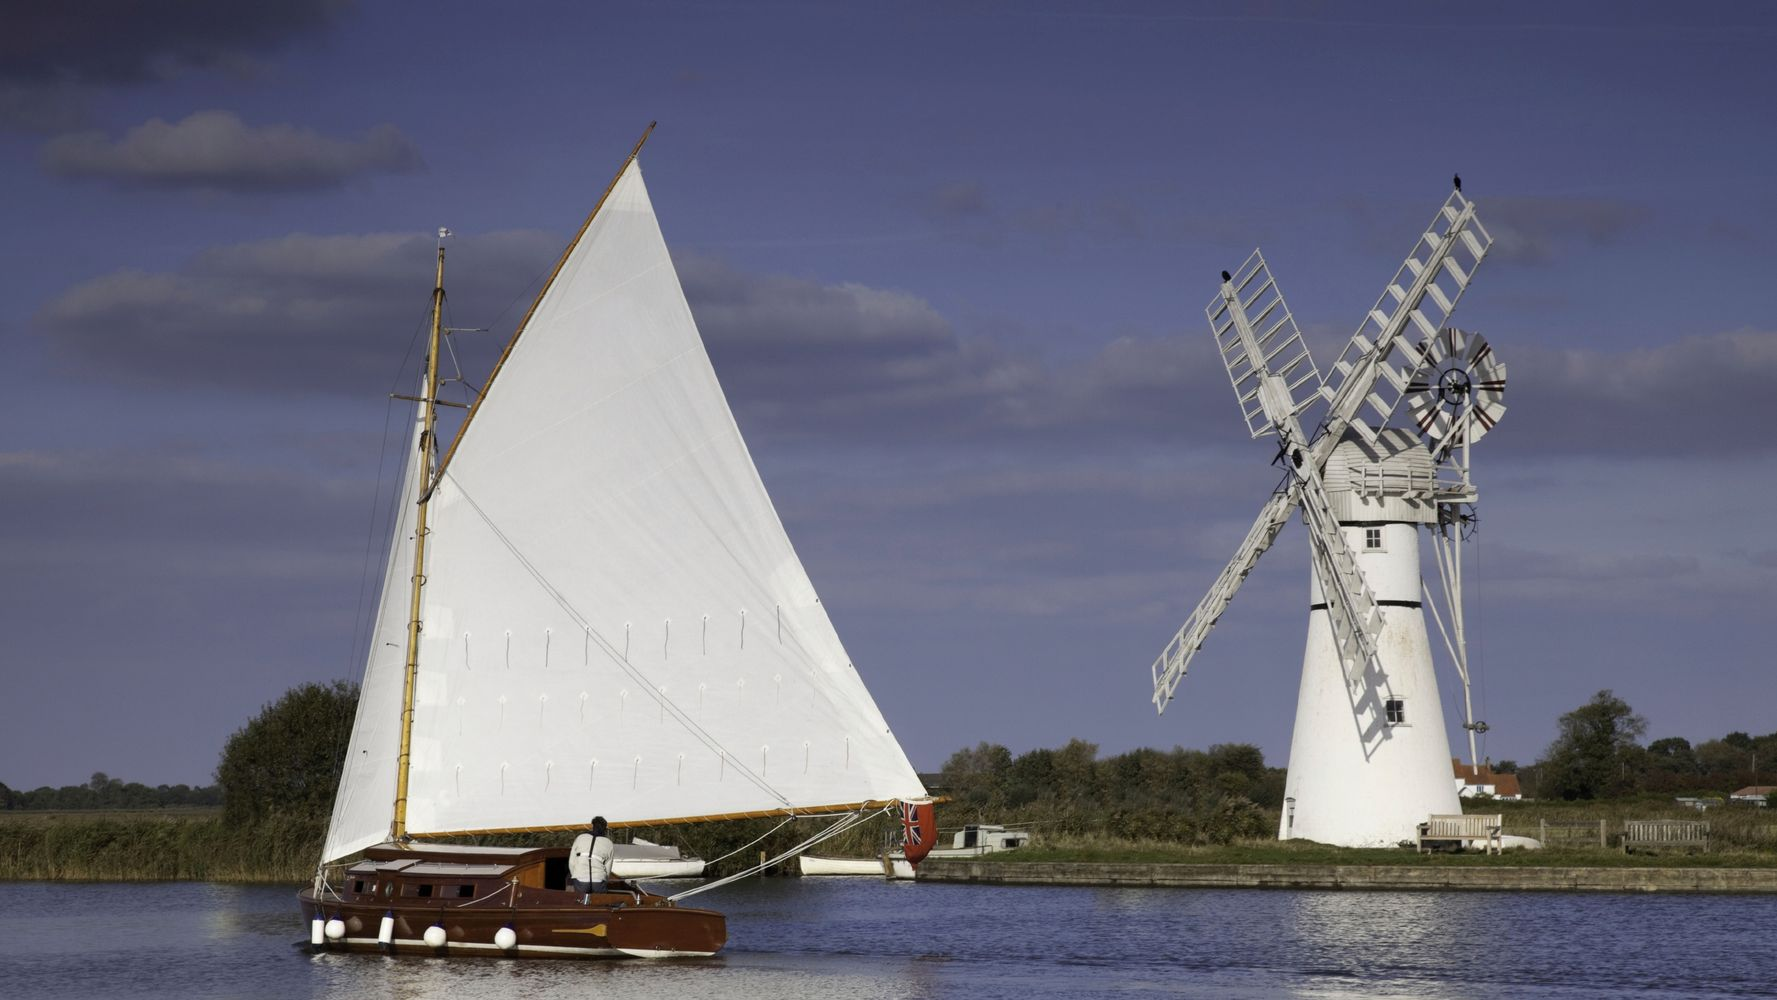 Classic Norfolk Broads Sailing Boat & Mill